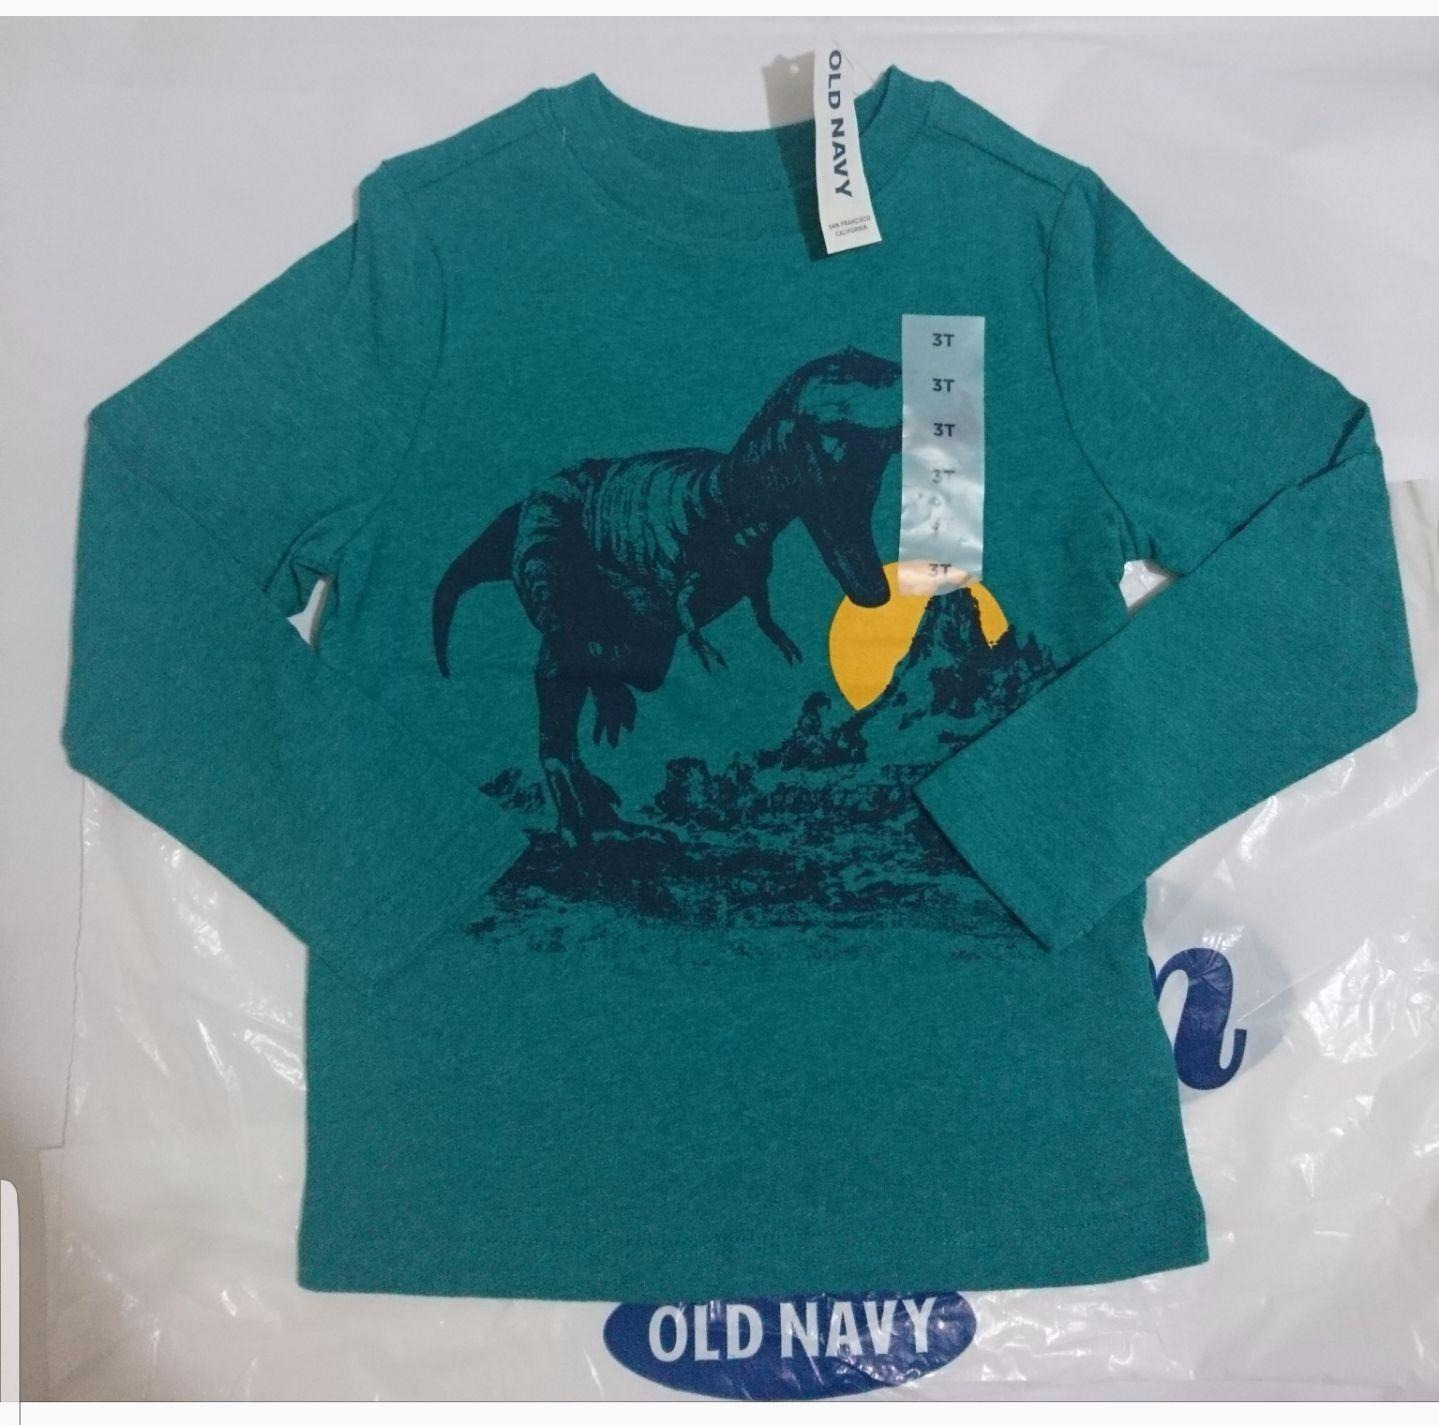 09568f186a0 Old Navy Hot Dog T Shirt Edge Engineering And Consulting Limited